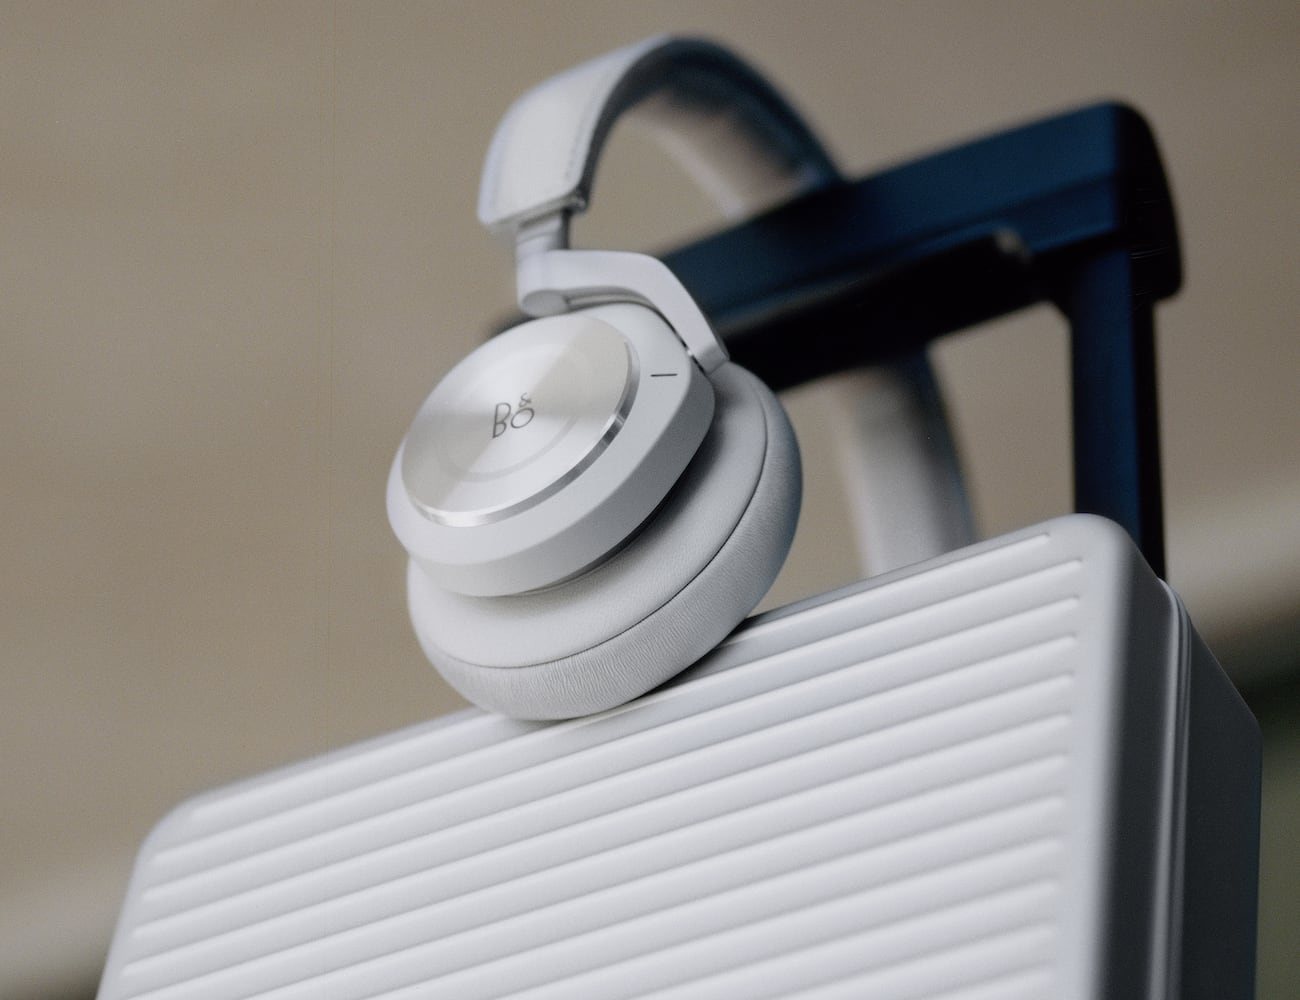 RIMOWA x Bang & Olufsen Beoplay H9i Headphones come in an aluminum case